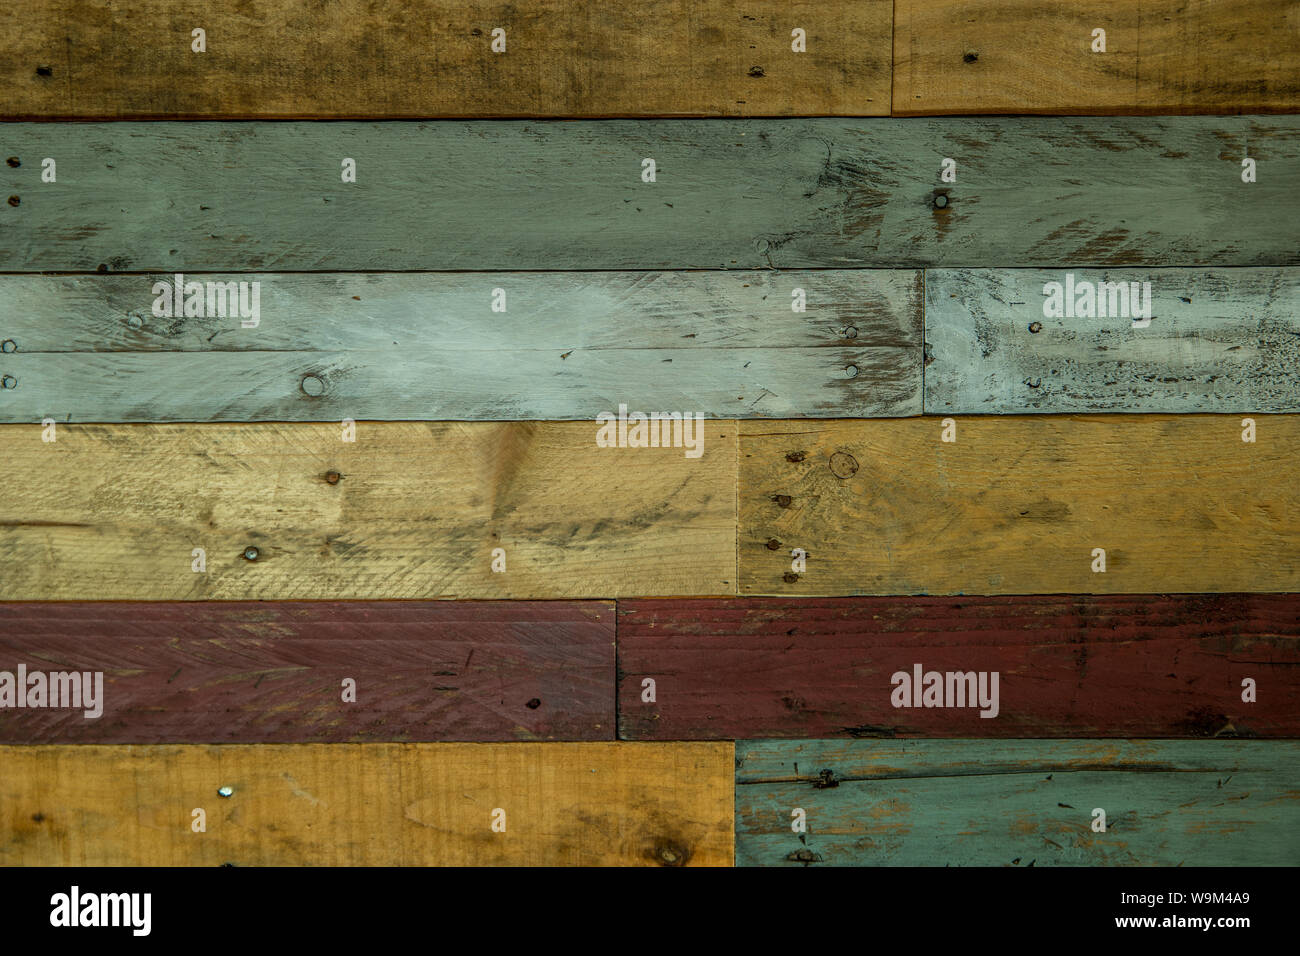 Rustic Pallet Wood Wall With White Red Grays And Tan Colors For Backgrounds Displays Flat Lays Or Copy Space Use Stock Photo Alamy